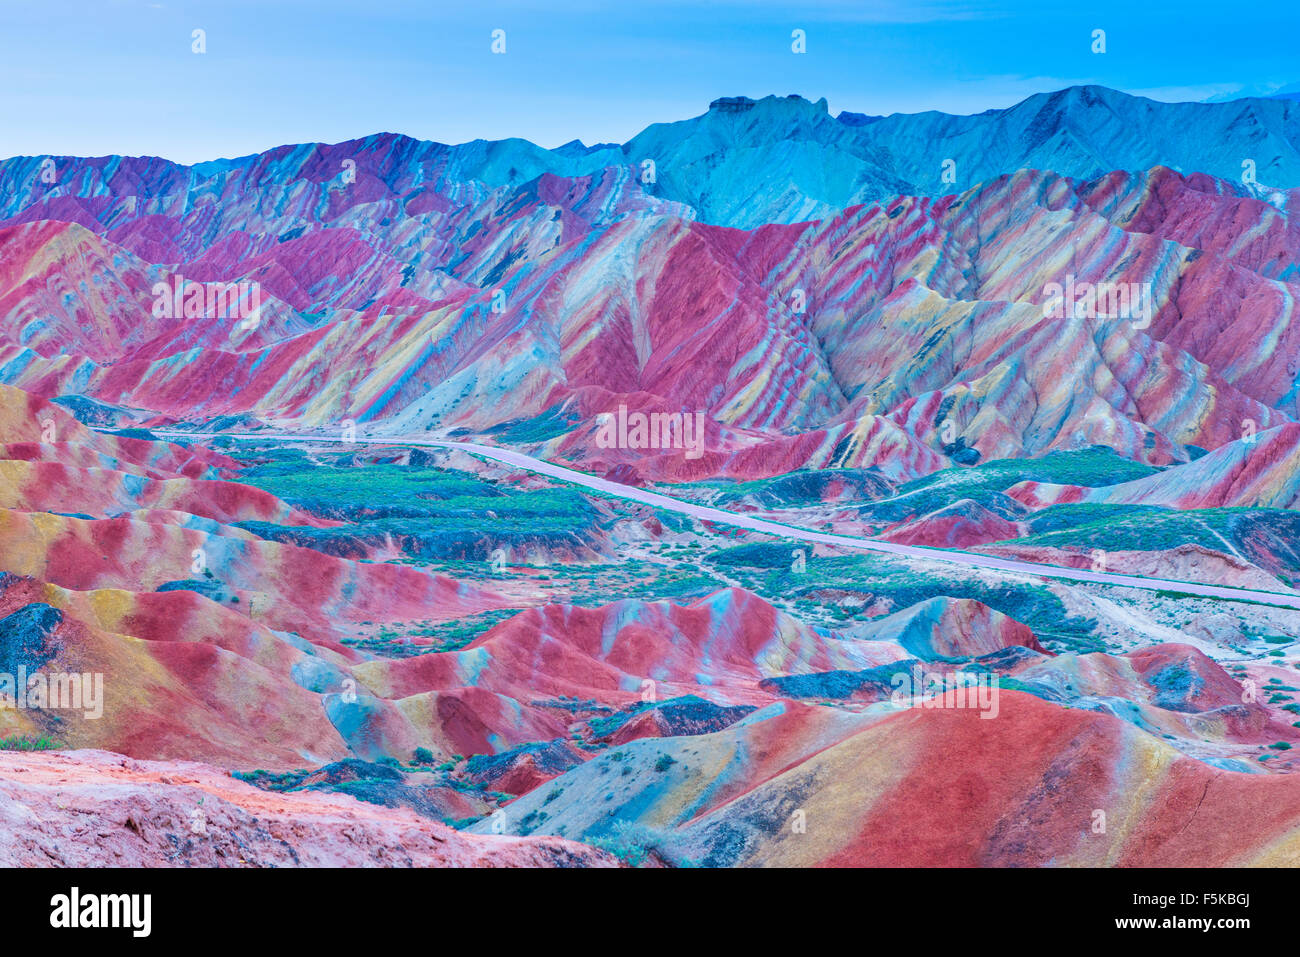 Colorful forms at Zhanhye Danxie Geo Park, China  Gansu Province, Ballands eroded in muliple colors - Stock Image